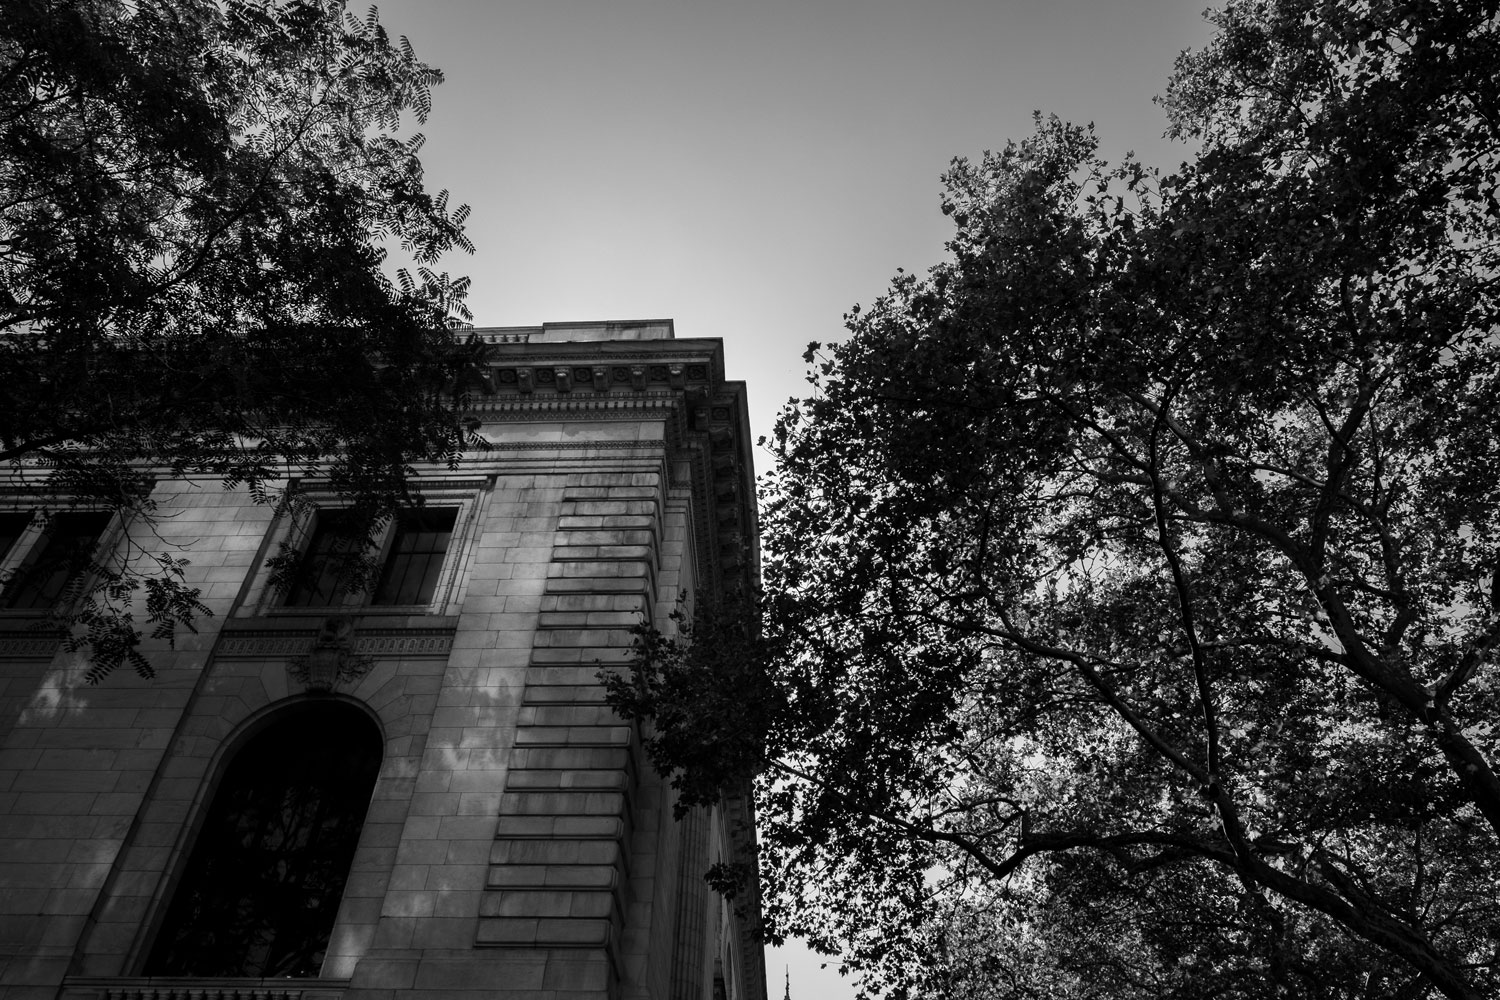 The corner of the New York Public Library building